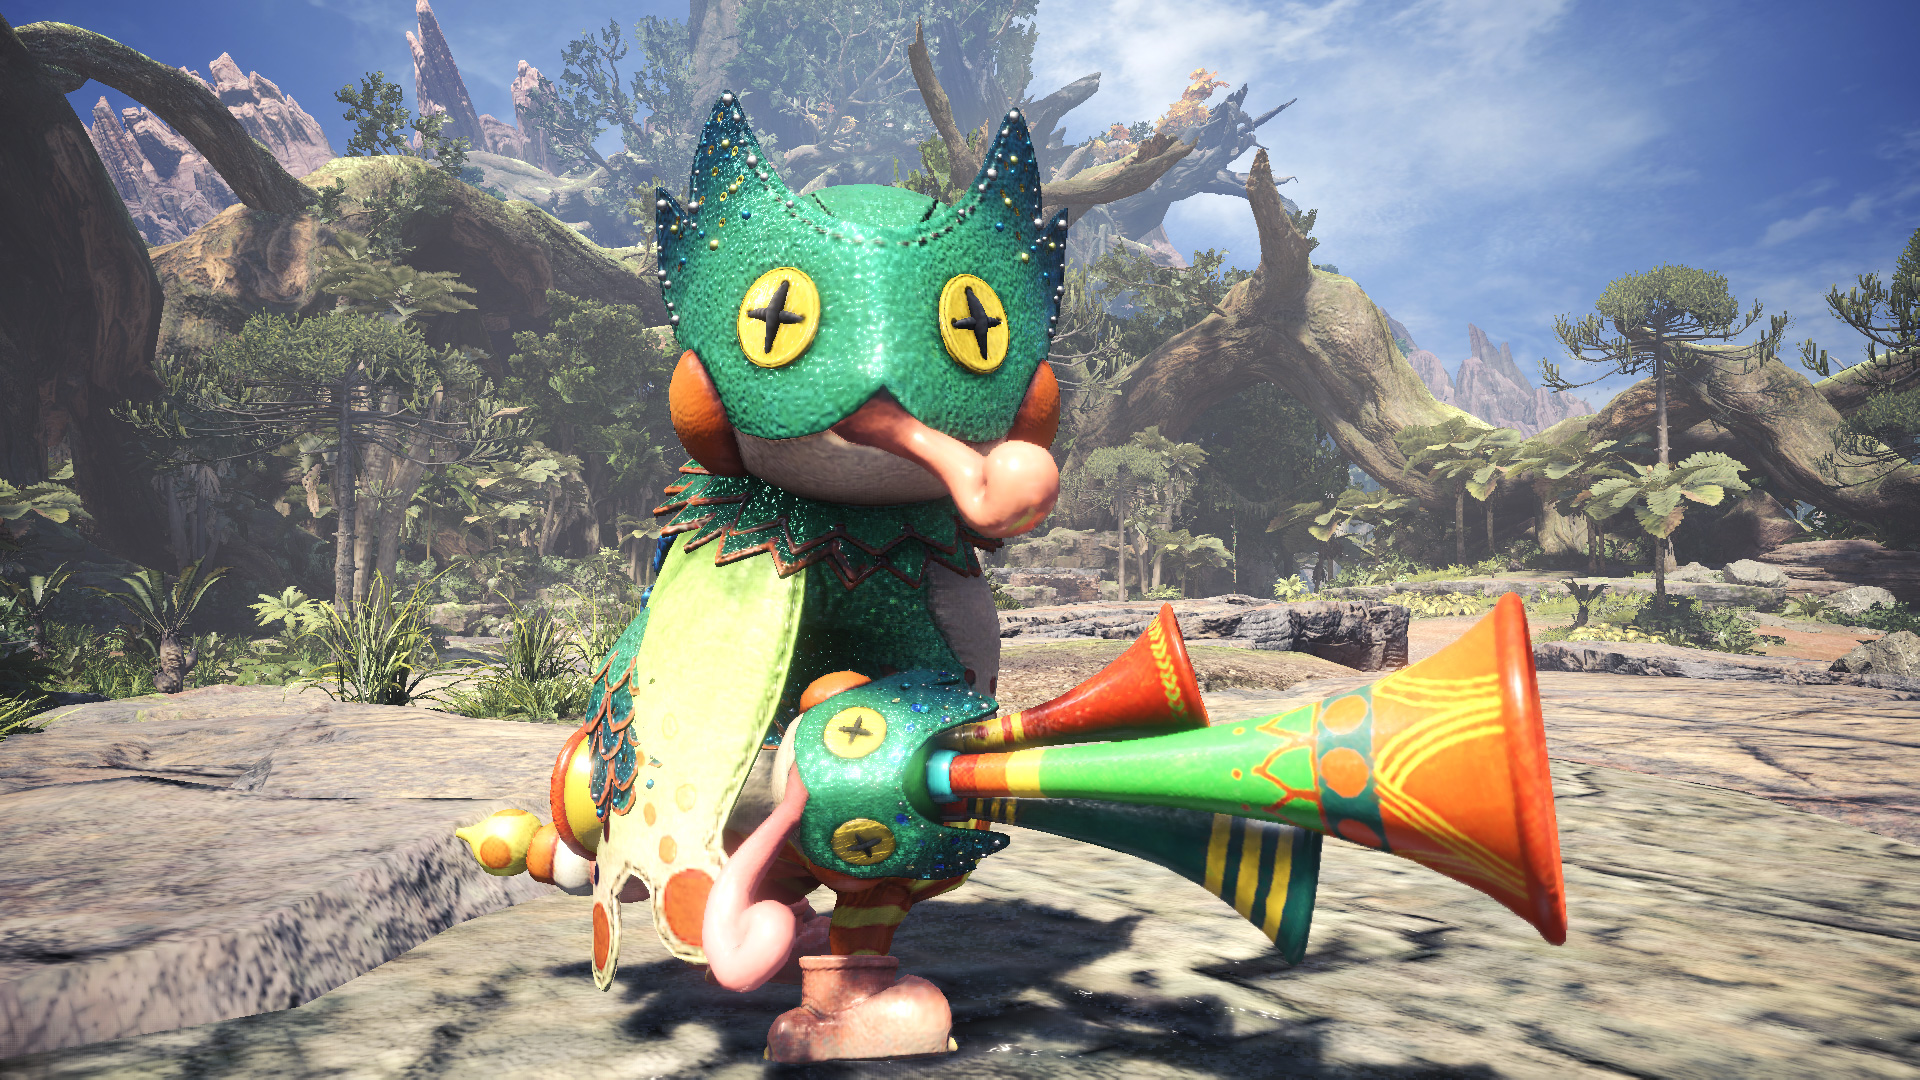 Monster Hunter World Iceborne S Fourth Title Update Adds Alatreon Frostfang Barioth Special Tracks More Rpg Site